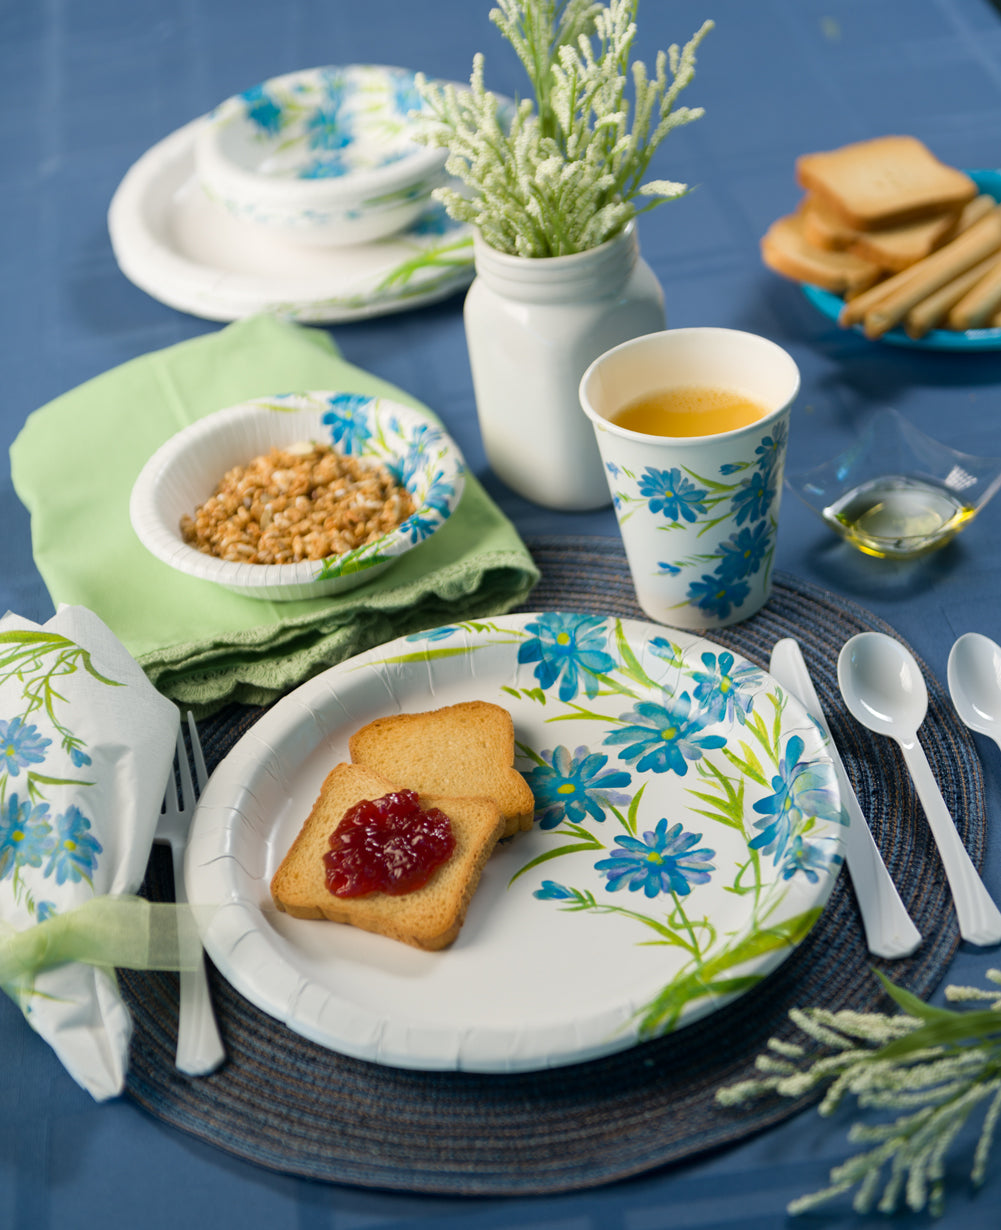 Premium Paper Floral Tableware<br/>Size Options: 12inch Plate, 10inch Plate, 8.75inch Plate, 7inch Plate, 20oz Bowl, 12oz Bowl, 12oz Cup., and Lunch Napkin